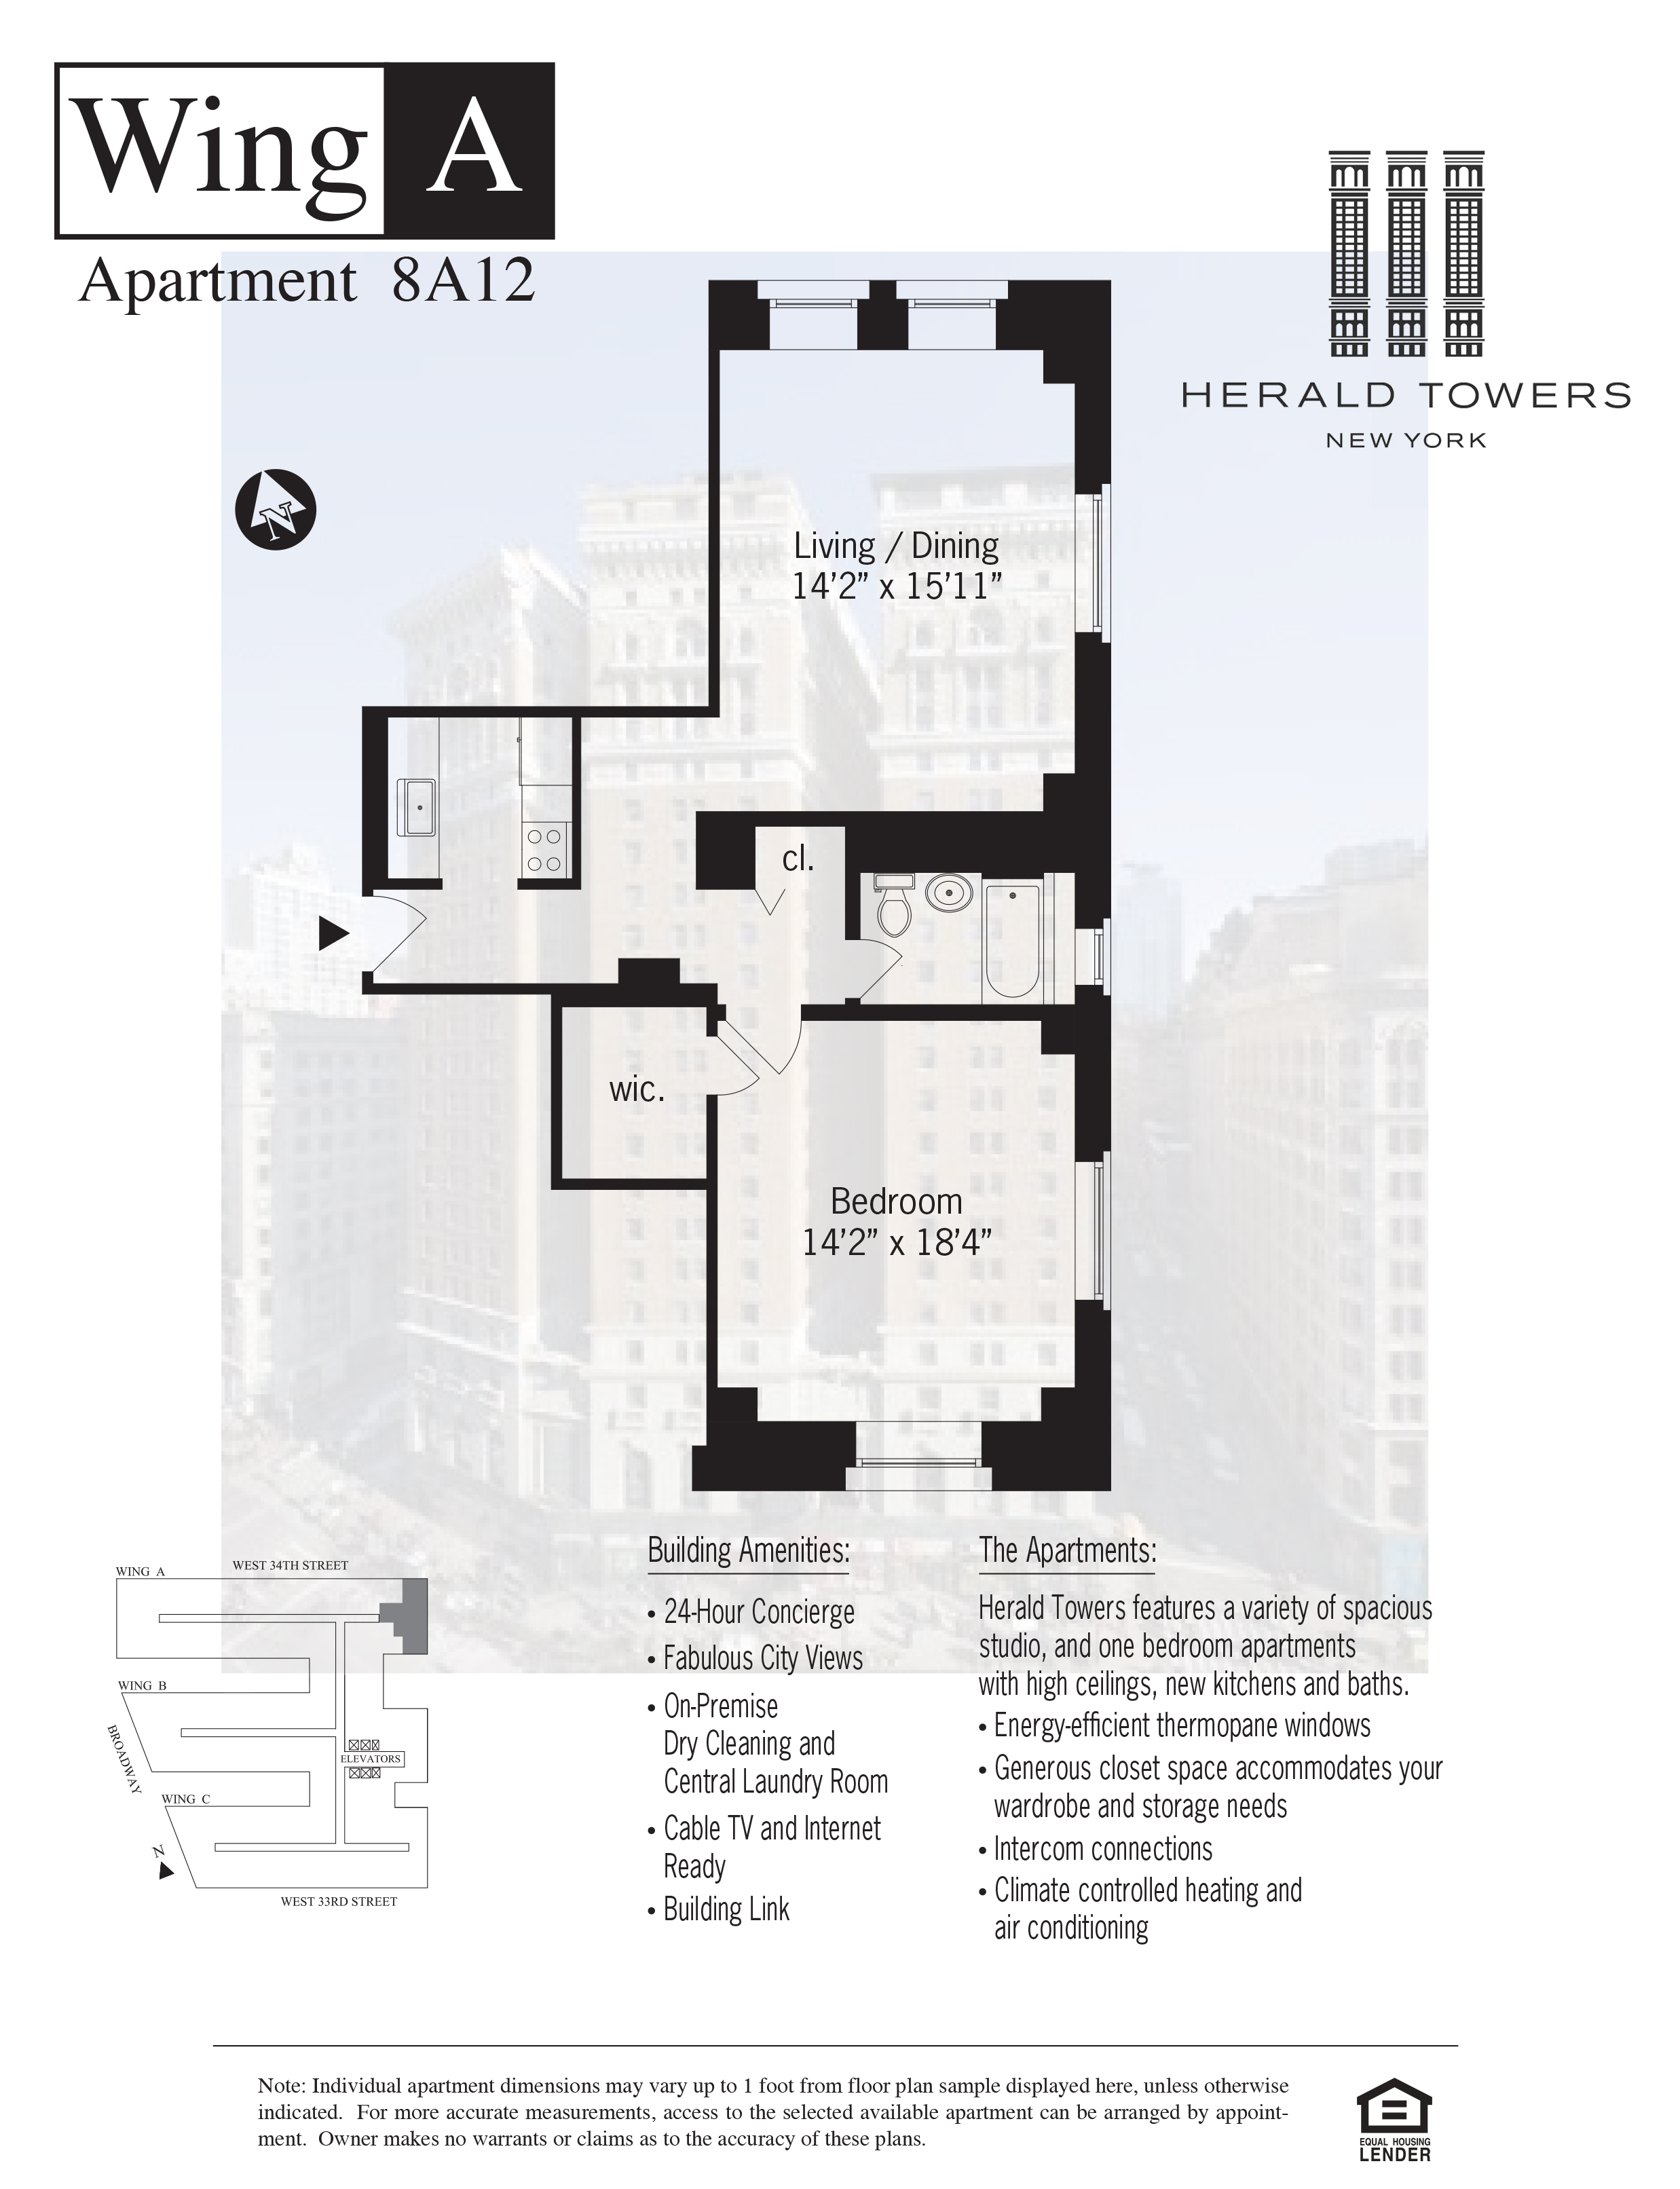 Floor plan for 08A12